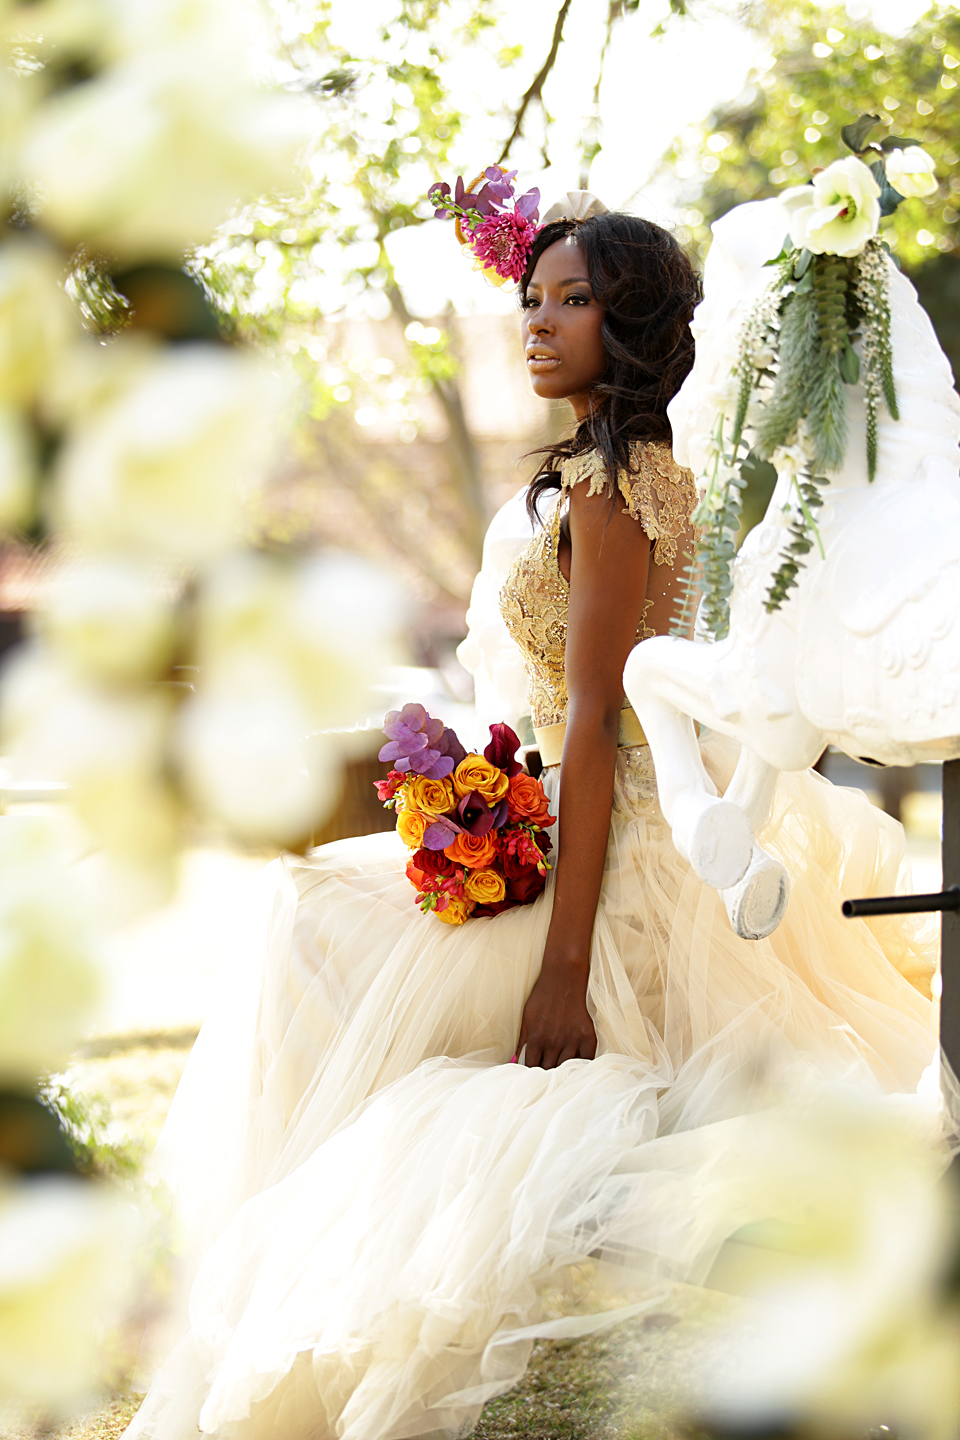 wedding-photographers-estilo-weddings-best-weddings-beautiful-couple-wedding-photography-nubian-bride-magazine-styled-shoot-south-africa__.jpg